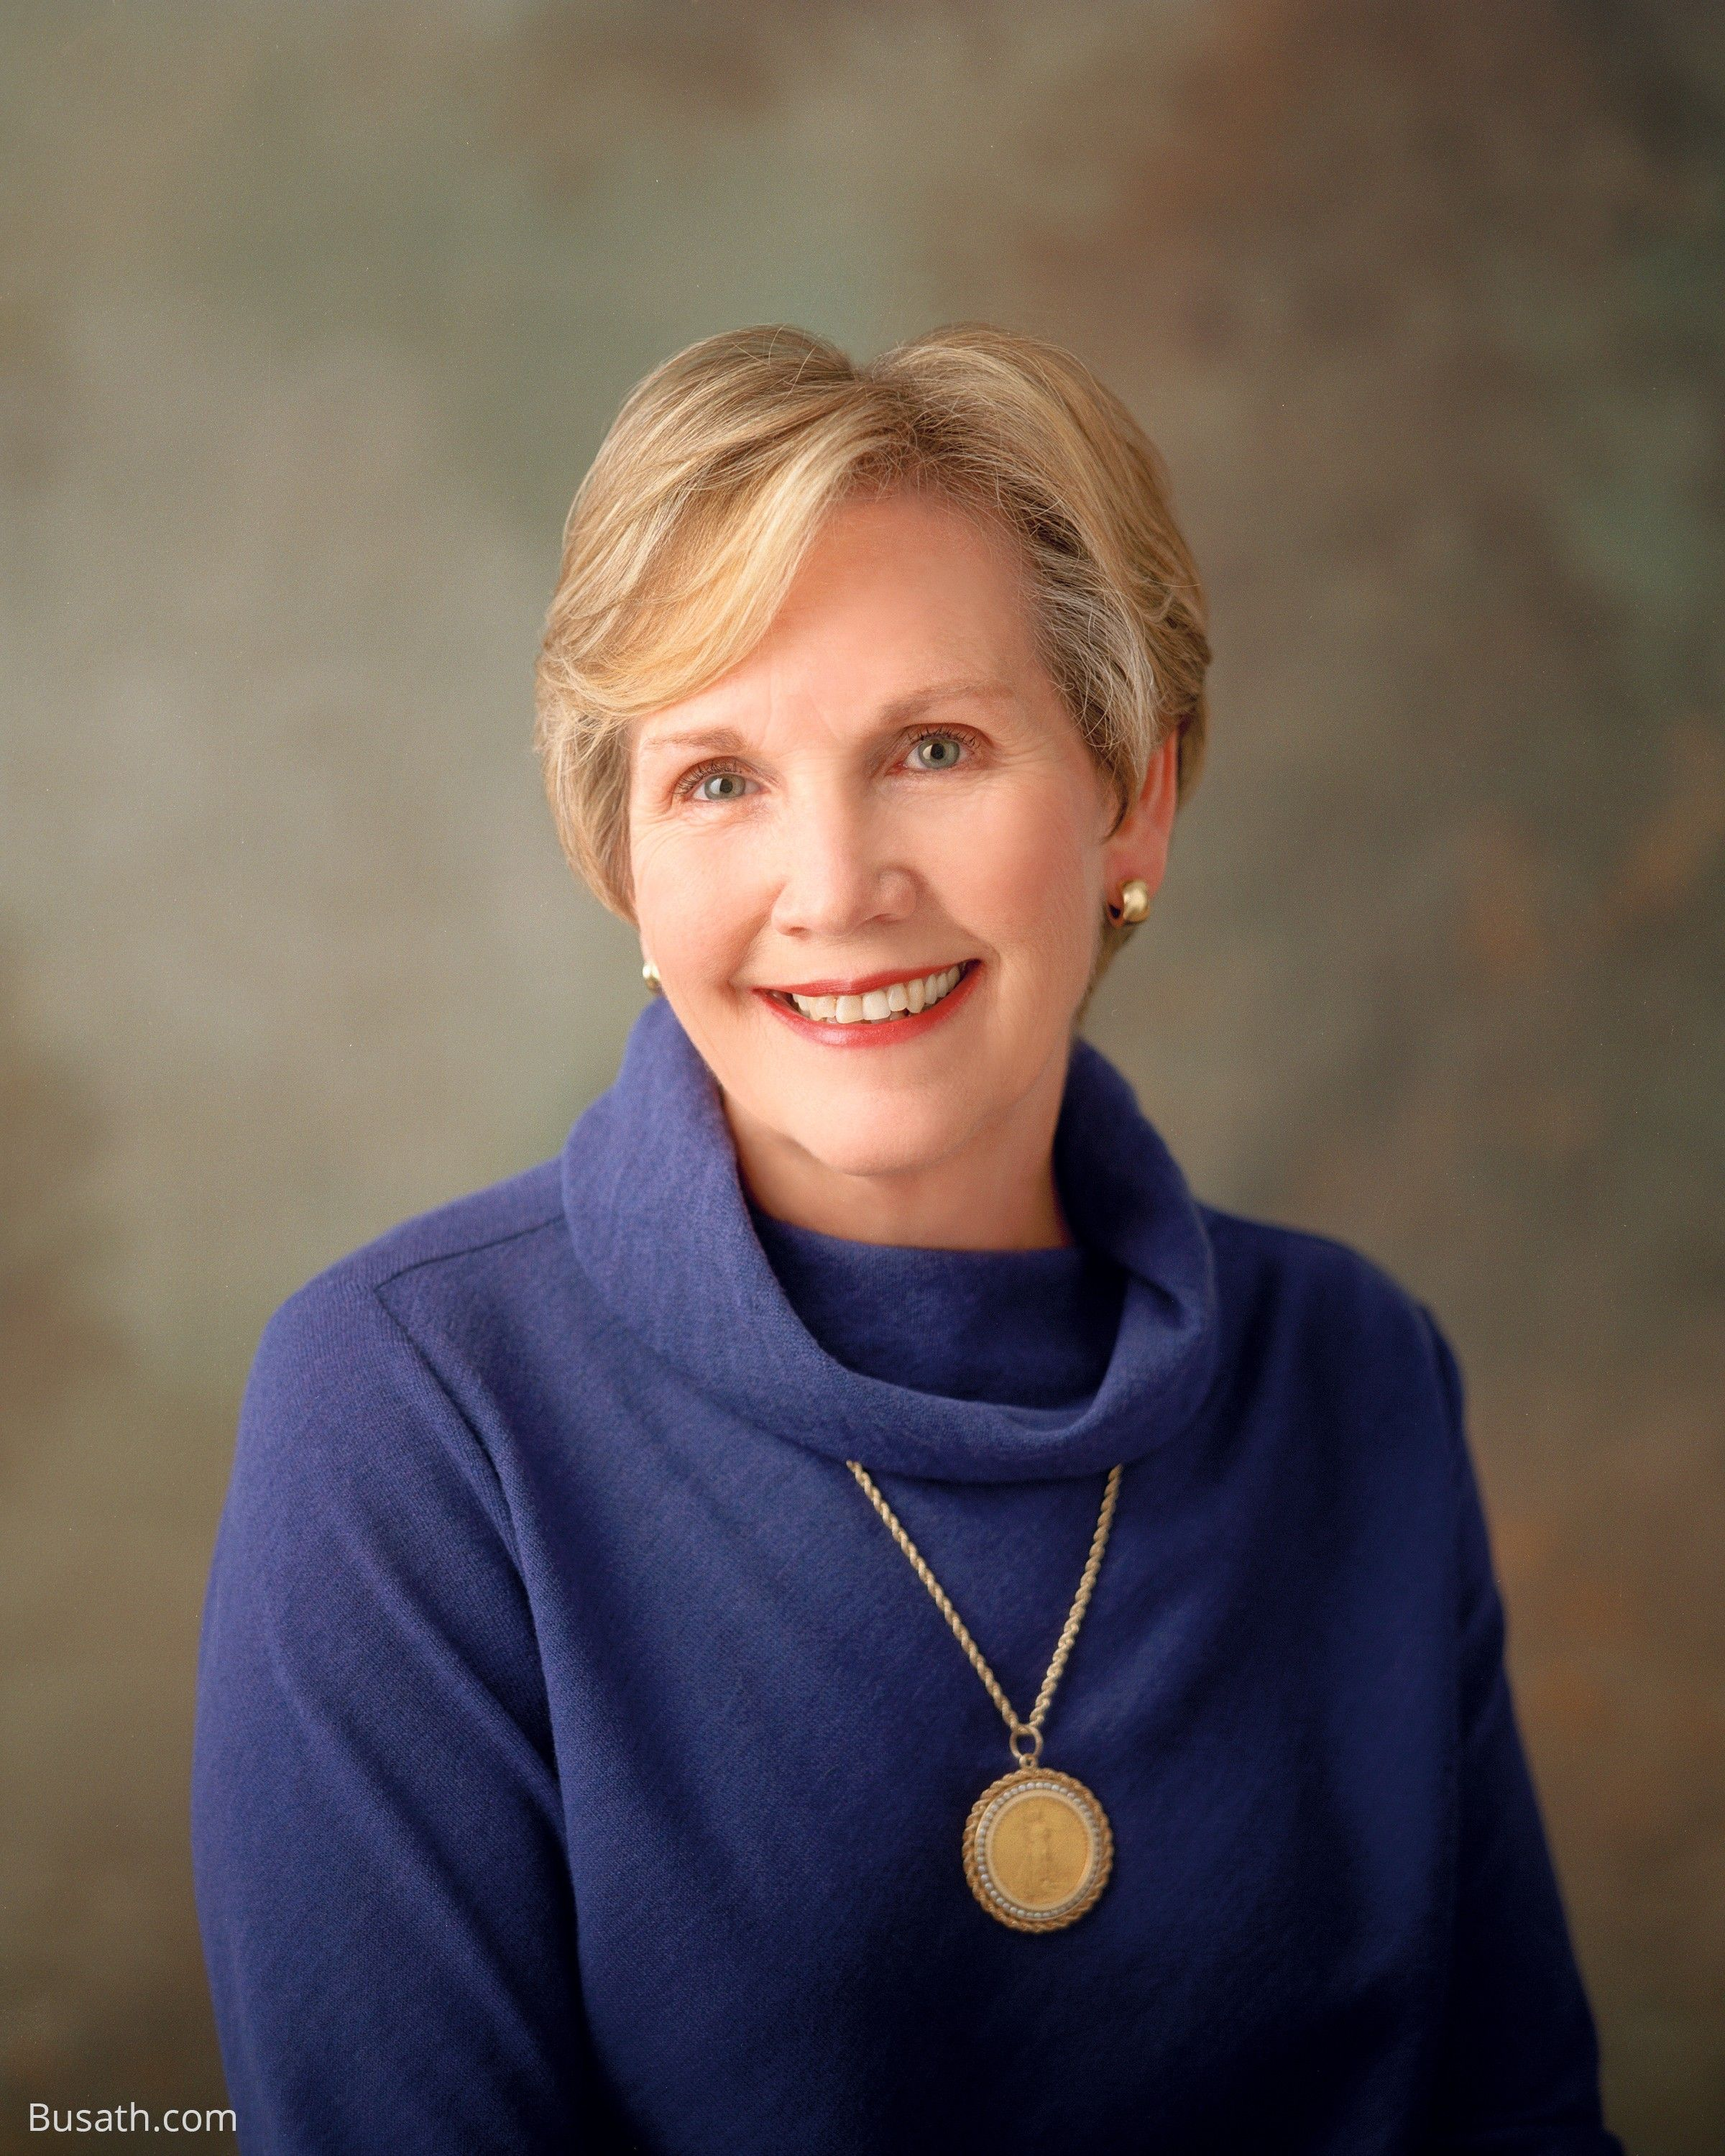 A portrait of Bonnie Dansie Parkin, who served as the 14th general president of the Relief Society from 2002 to 2007.